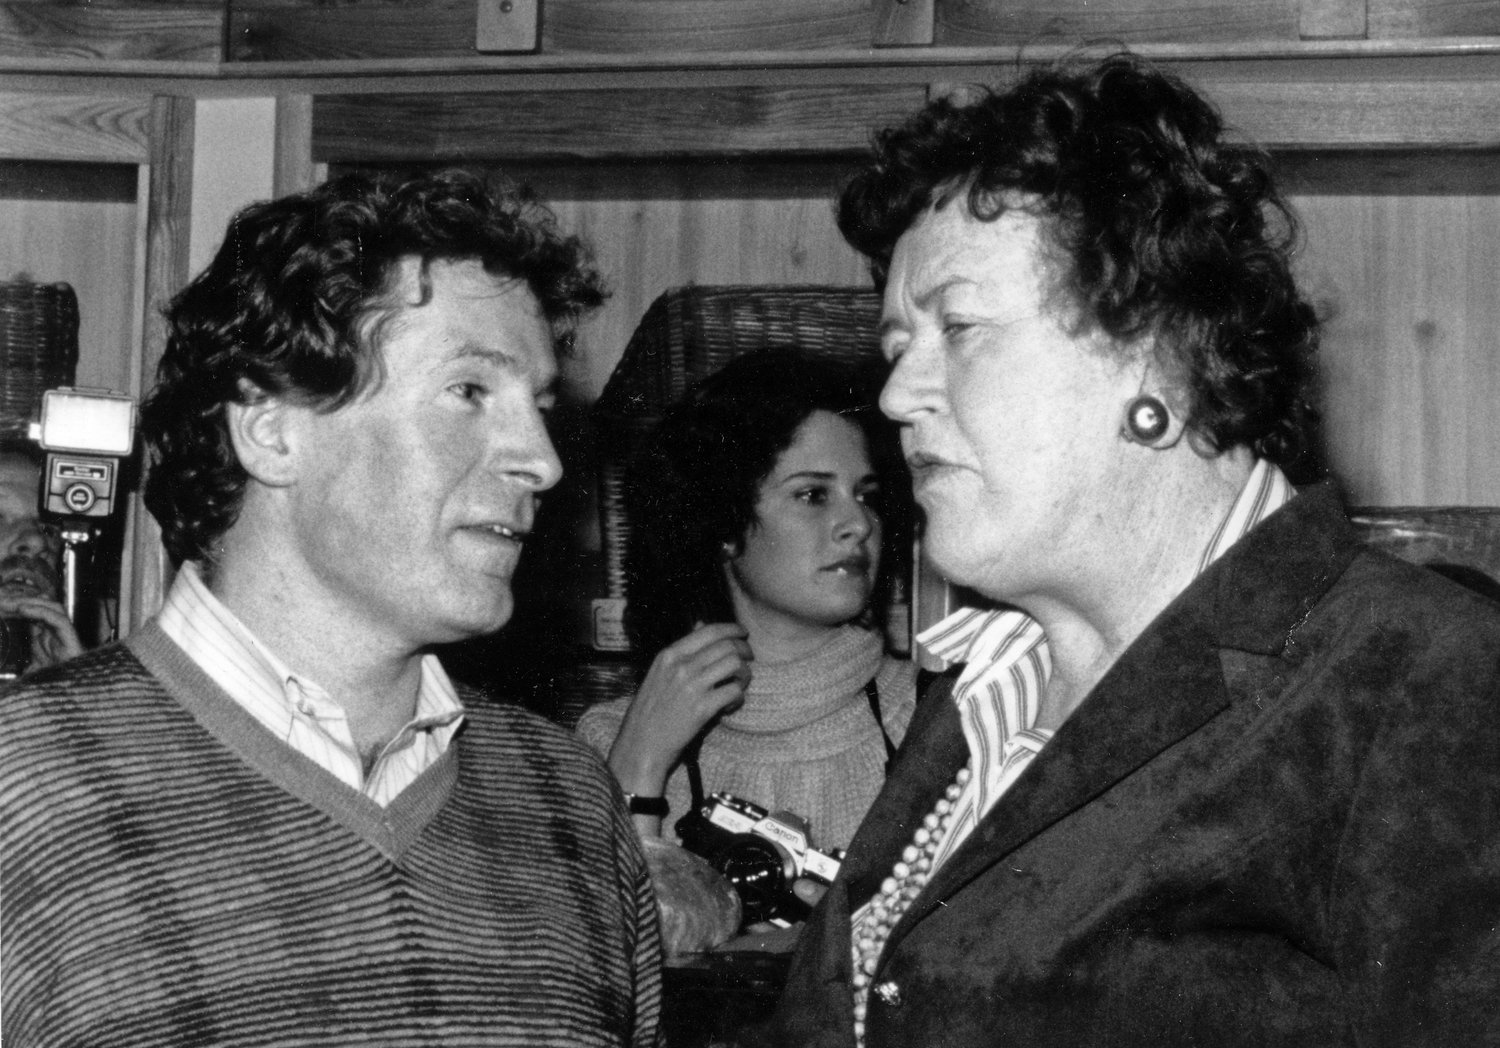 Jeremiah Tower with Julia Child at her birthday party in the early 1980s